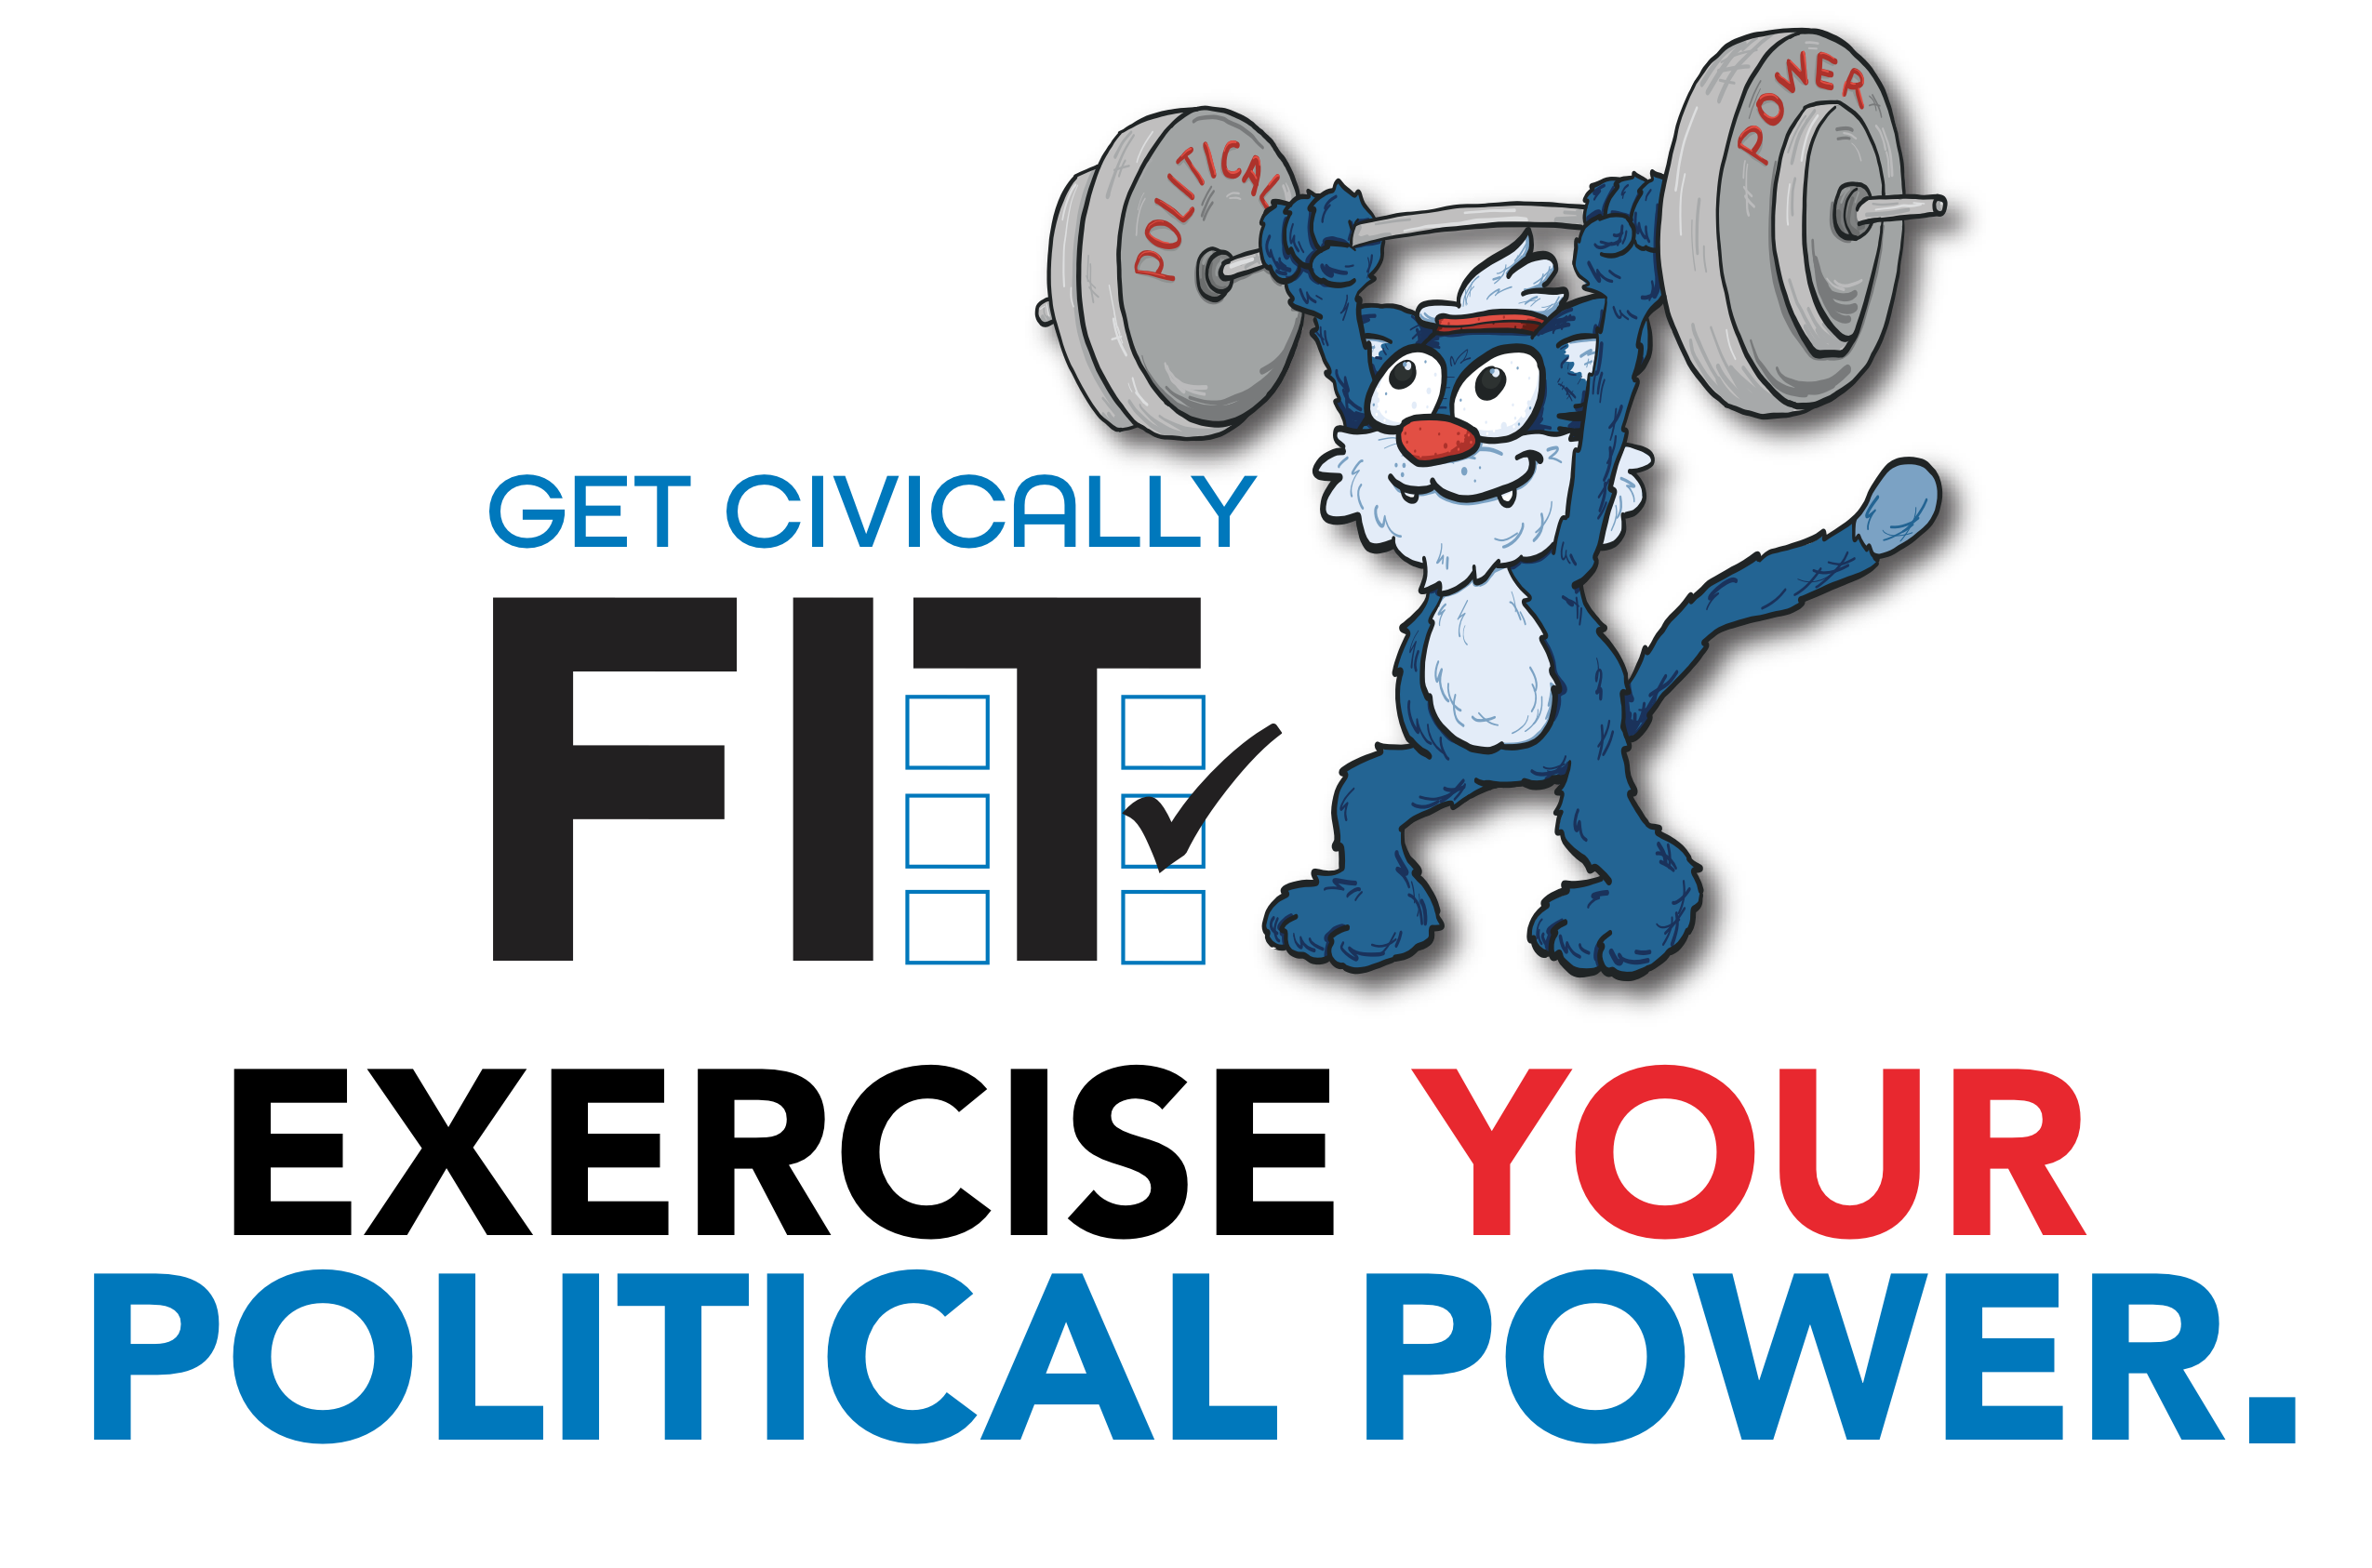 Willie the Wildcat lifting weights that say political power